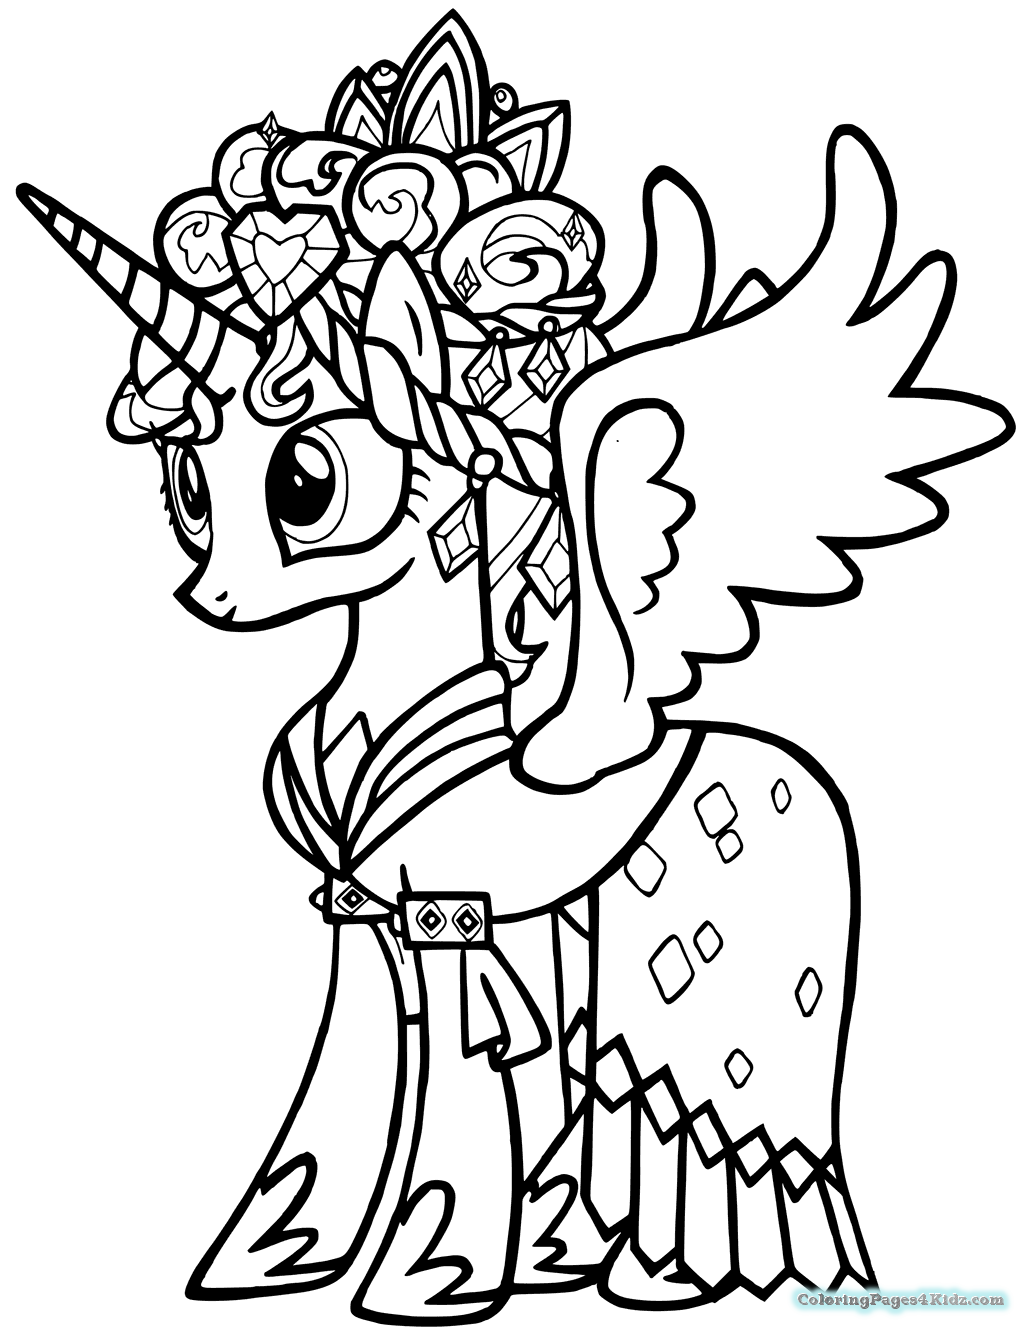 coloring page pony my little pony coloring pages coloring pages with ponies pony page coloring